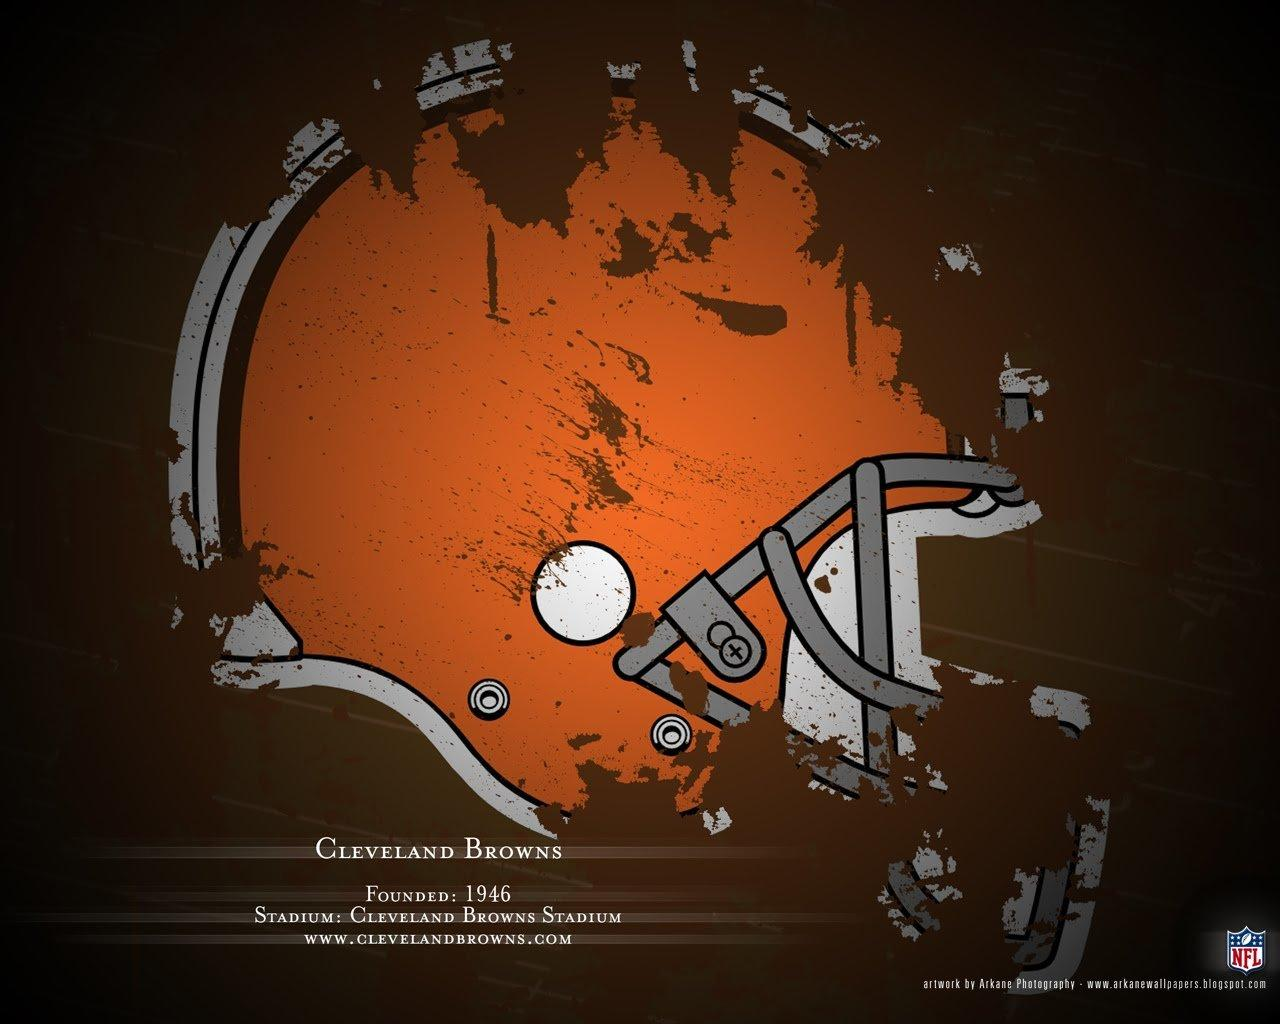 Cleveland Browns wallpapers 1280x1024 desktop backgrounds